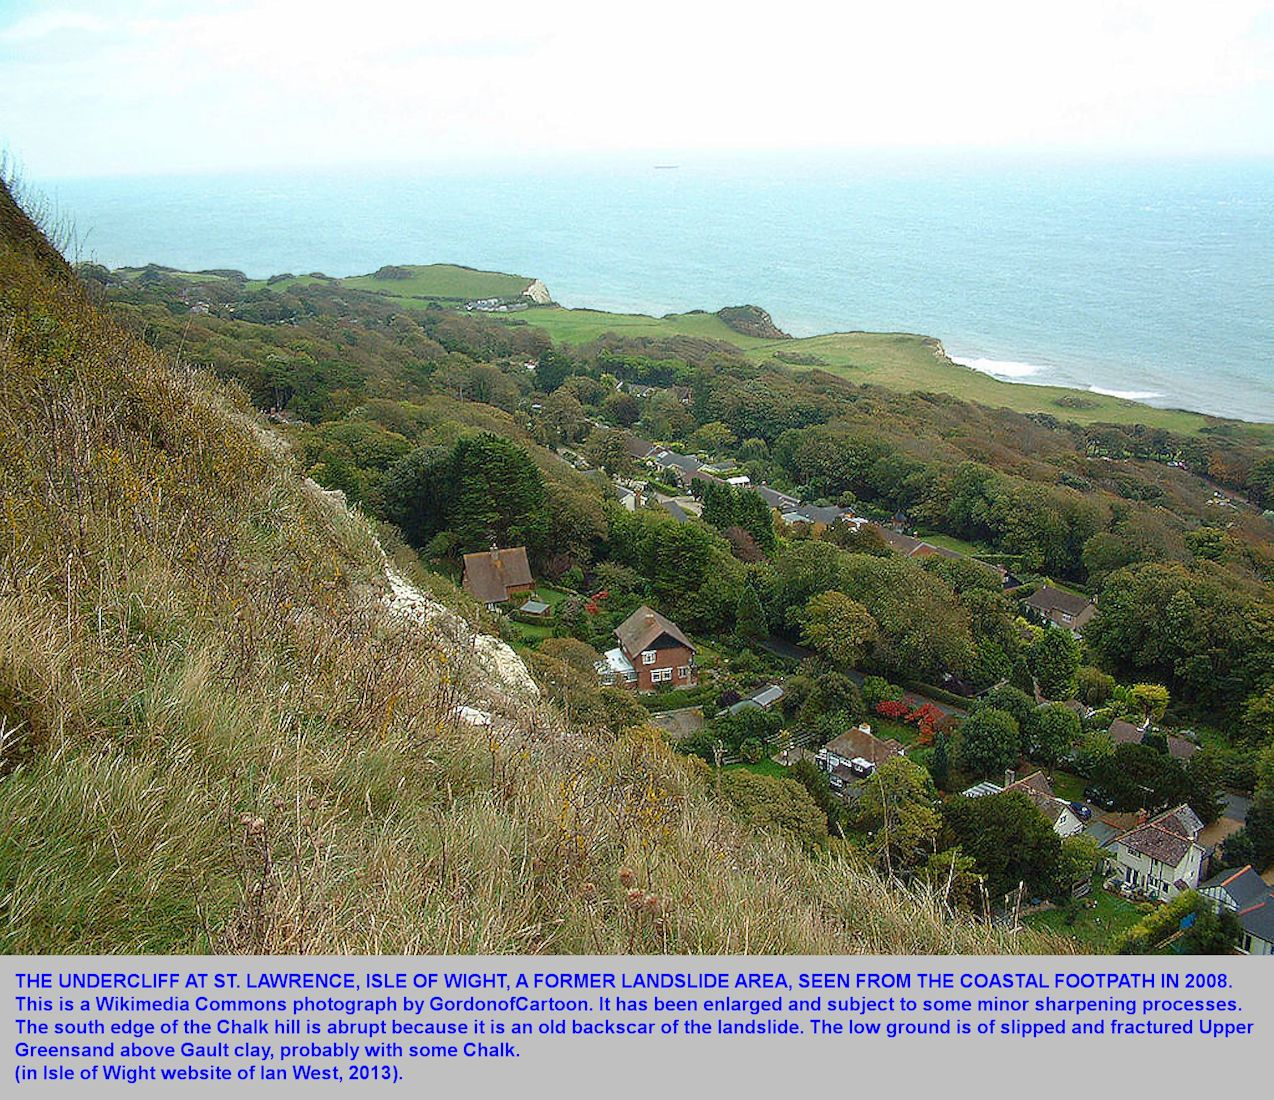 St. Lawrence, a village on the Undercliff of the southern Isle of Wight, 2008